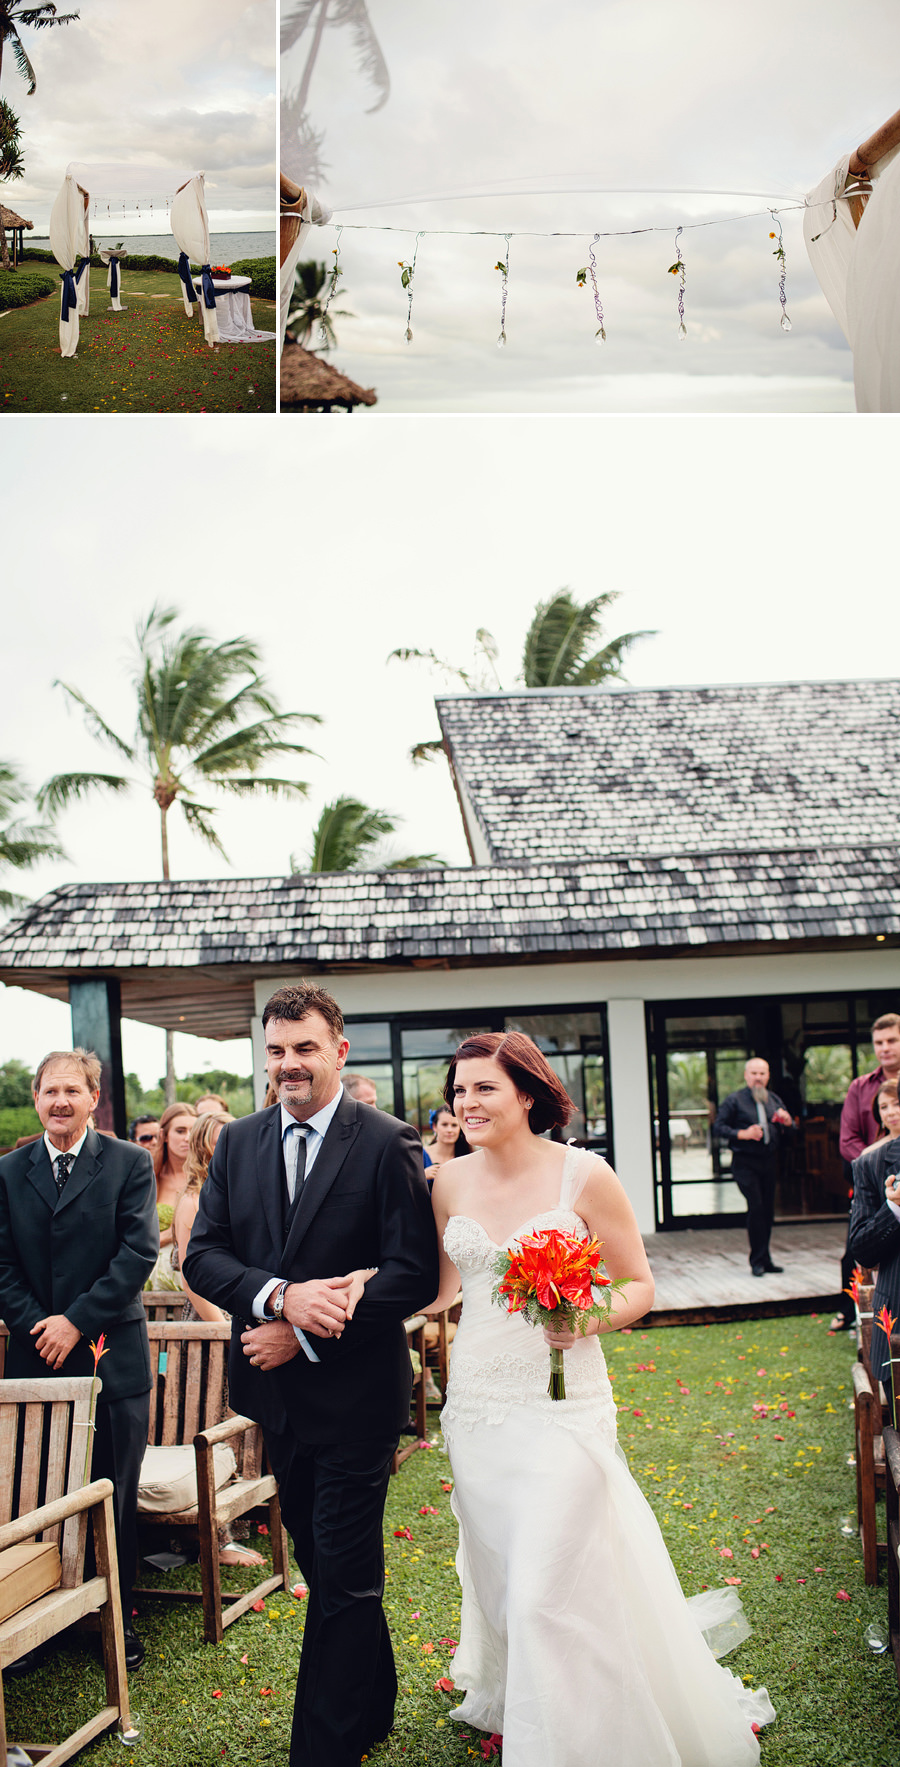 Suva Wedding Photographer: Bride & father walking down the aisle